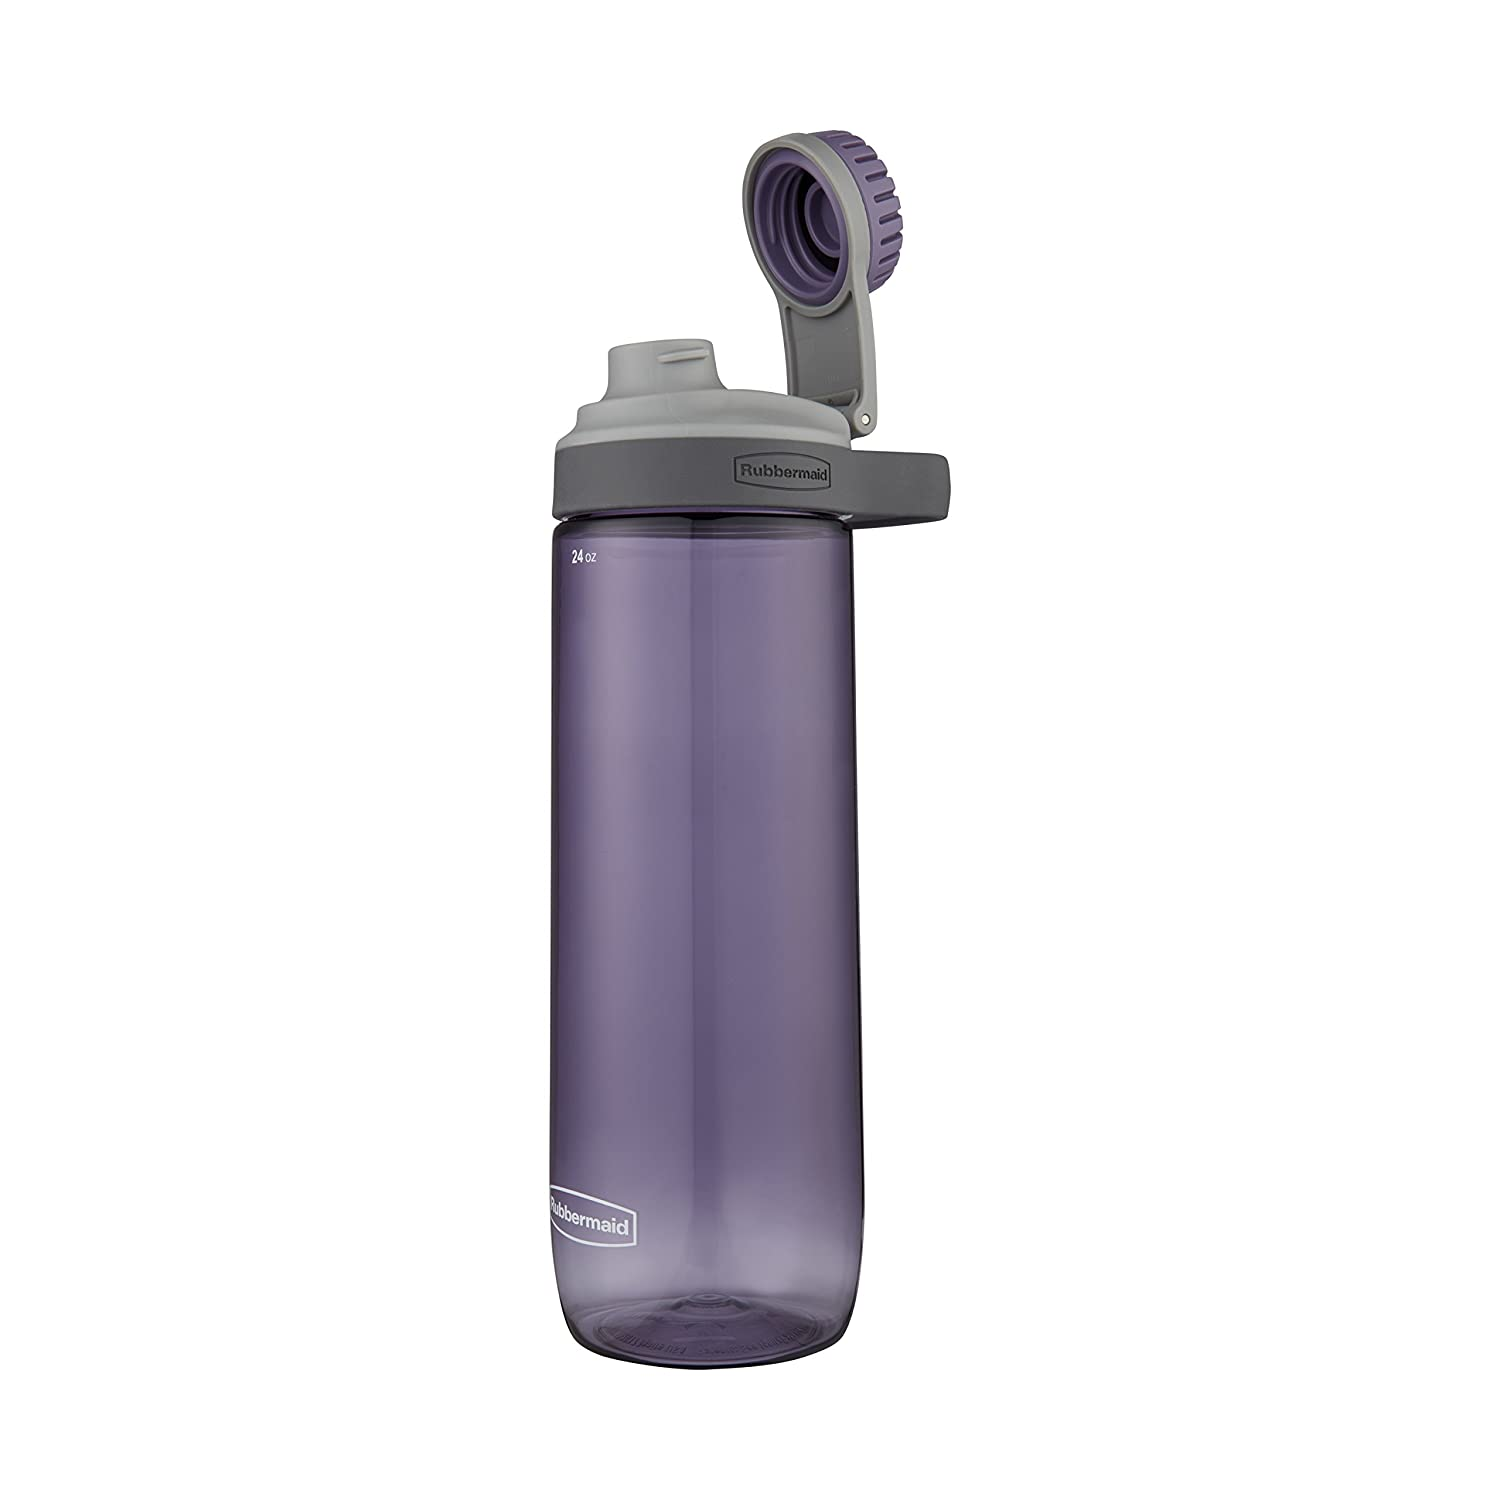 Rubbermaid Leak-Proof Chug Water Bottle, 24 oz, Dusty Lilac